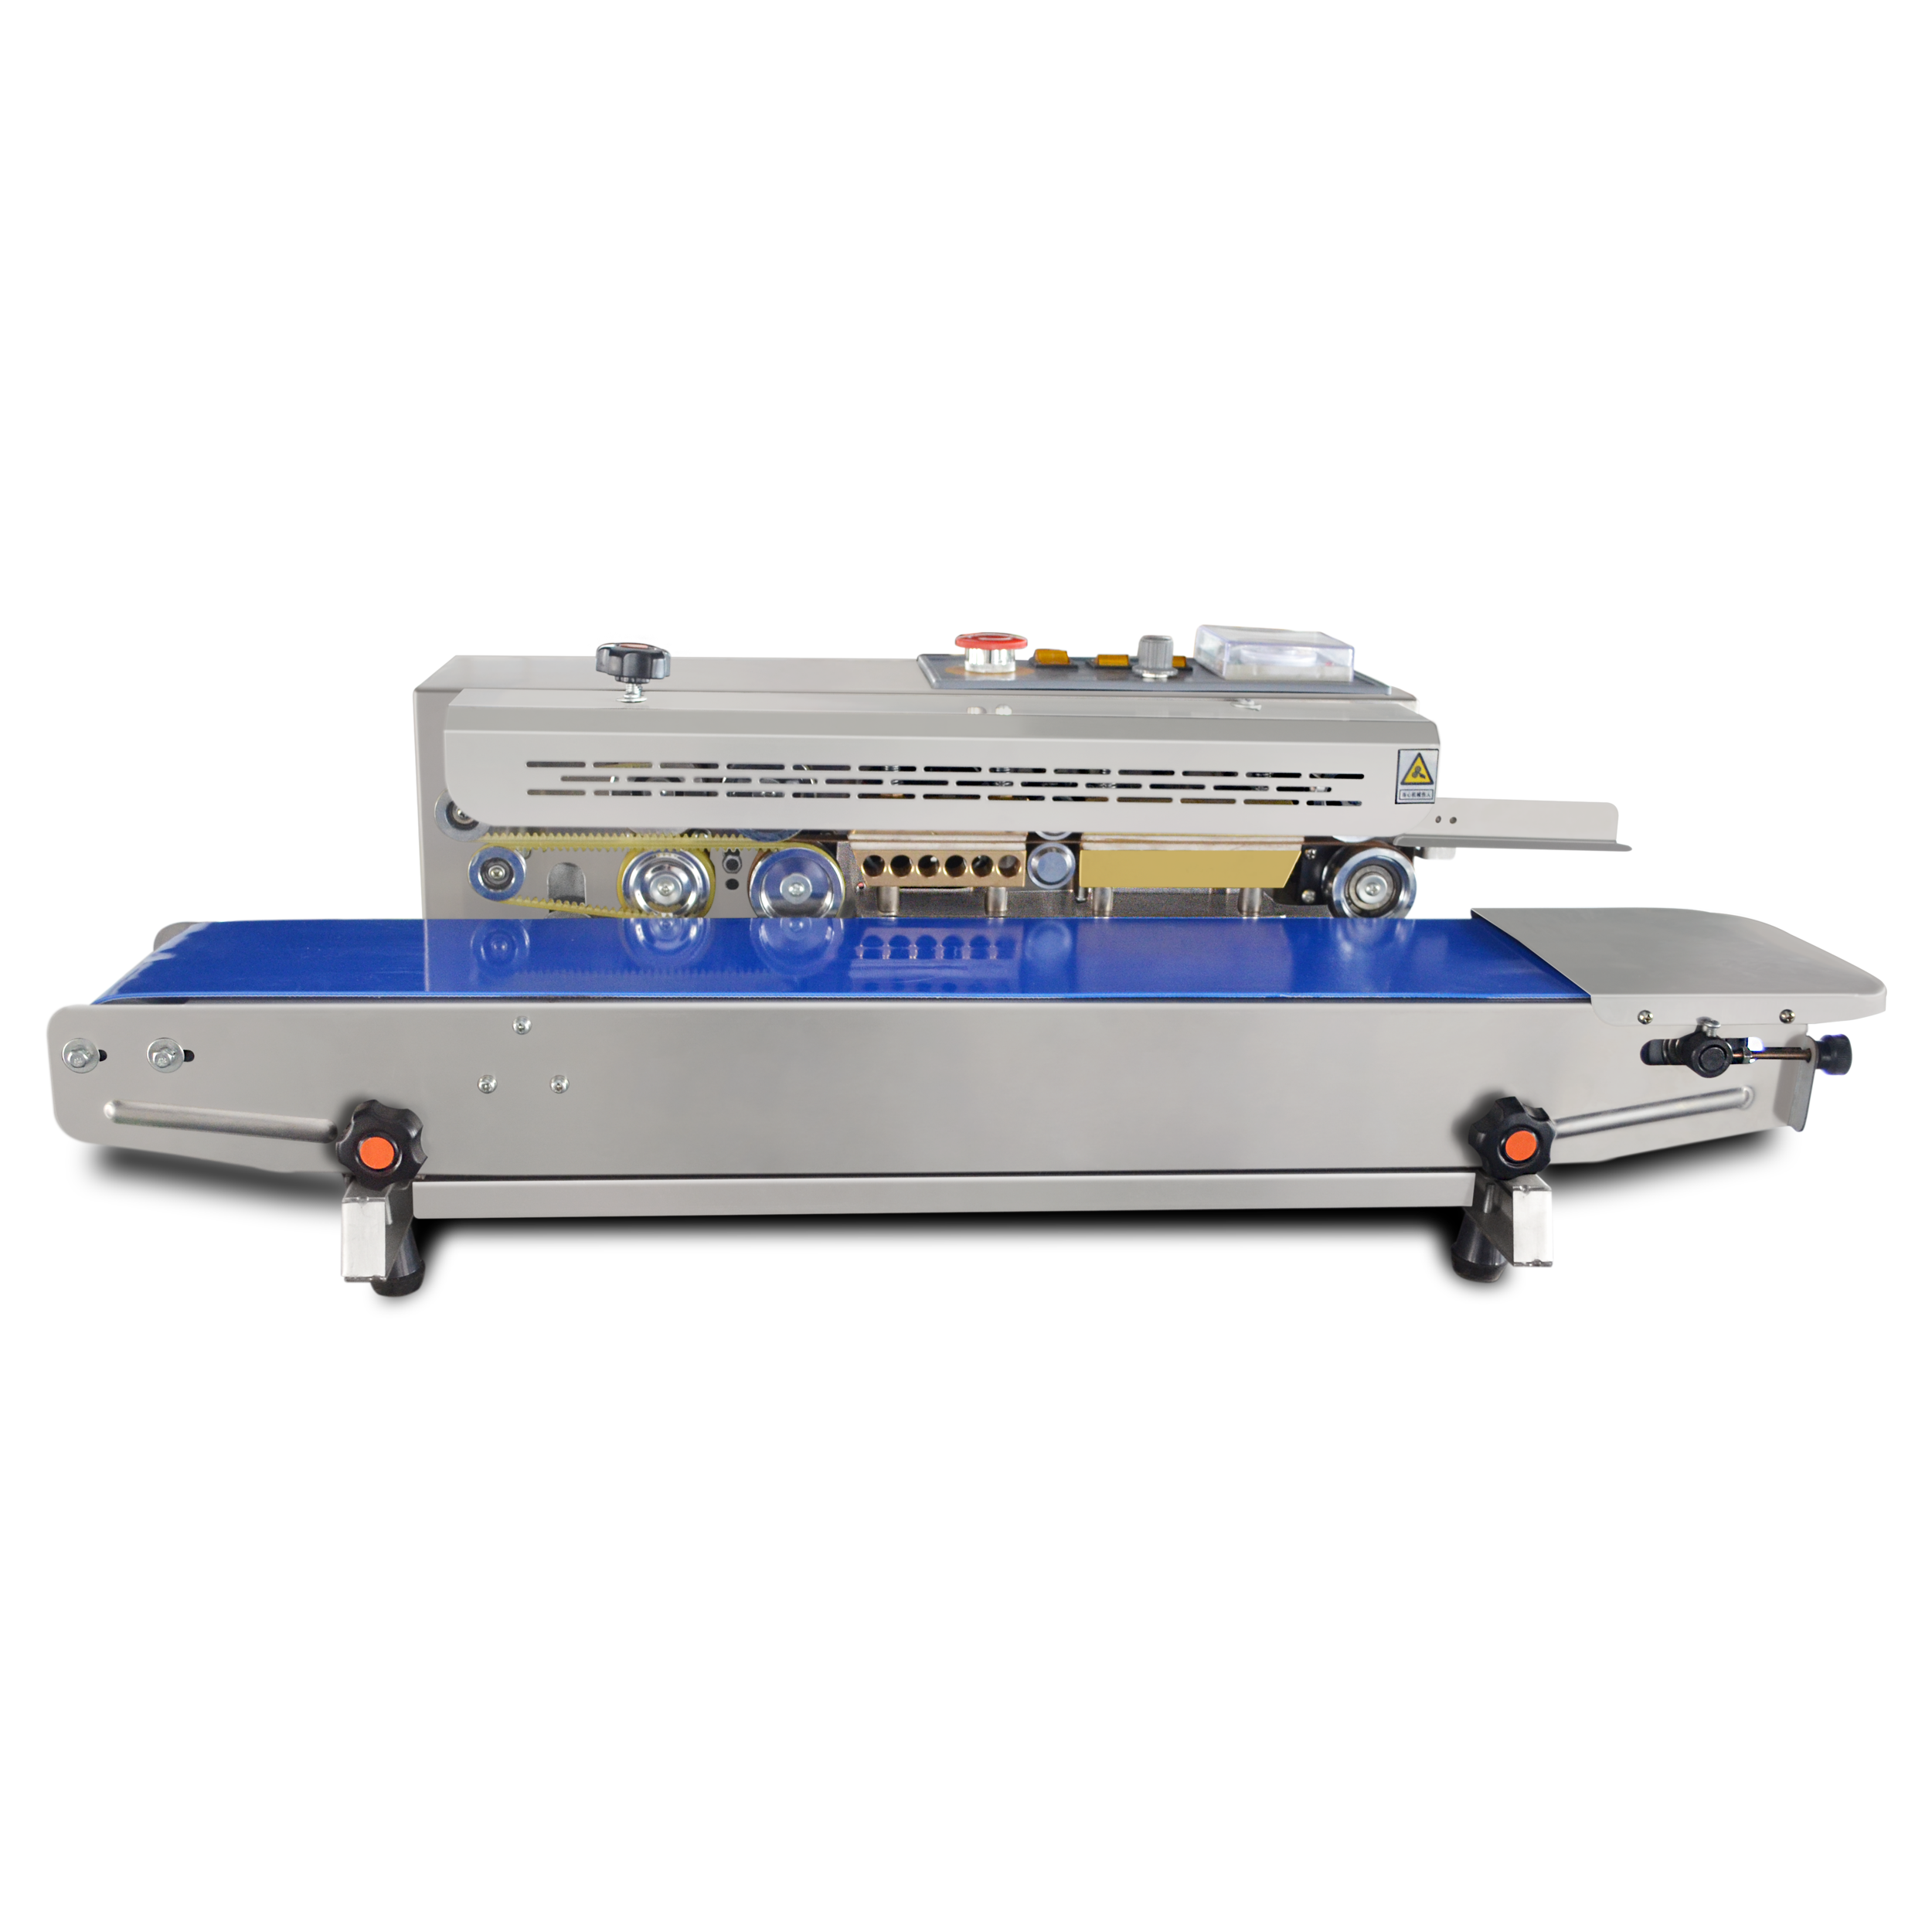 DBF-900W continuous band sealer with printing